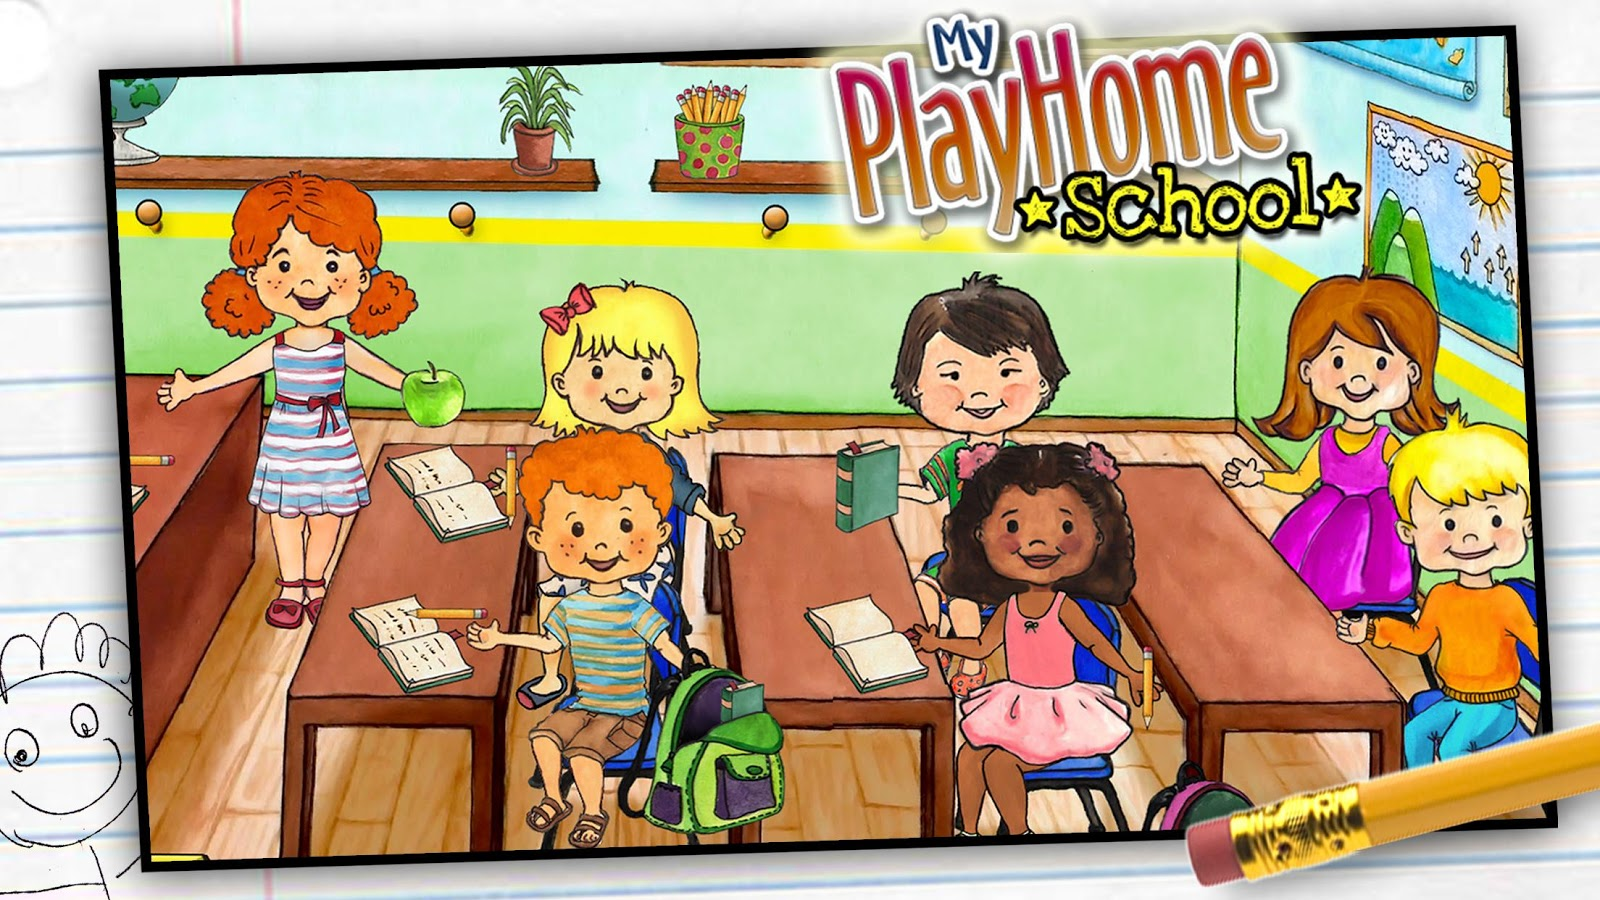 My PlayHome School Screenshot 1